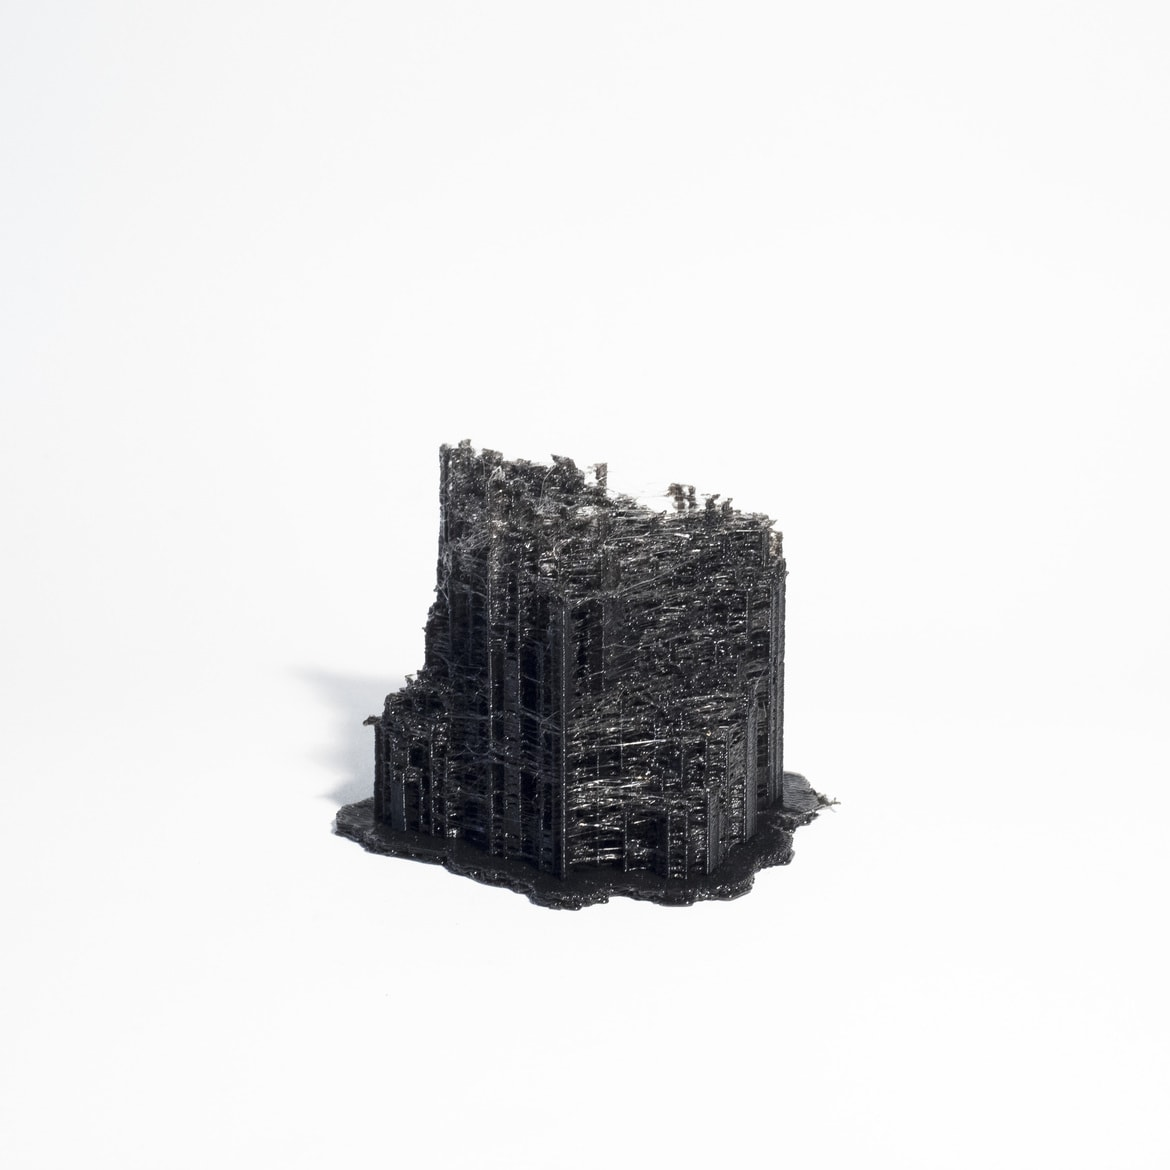 'City Constructed from Sleeping Brain Activity Data (no.16)', 2015, 3D printed PLA plastic, data, edition of 3 + 1AP